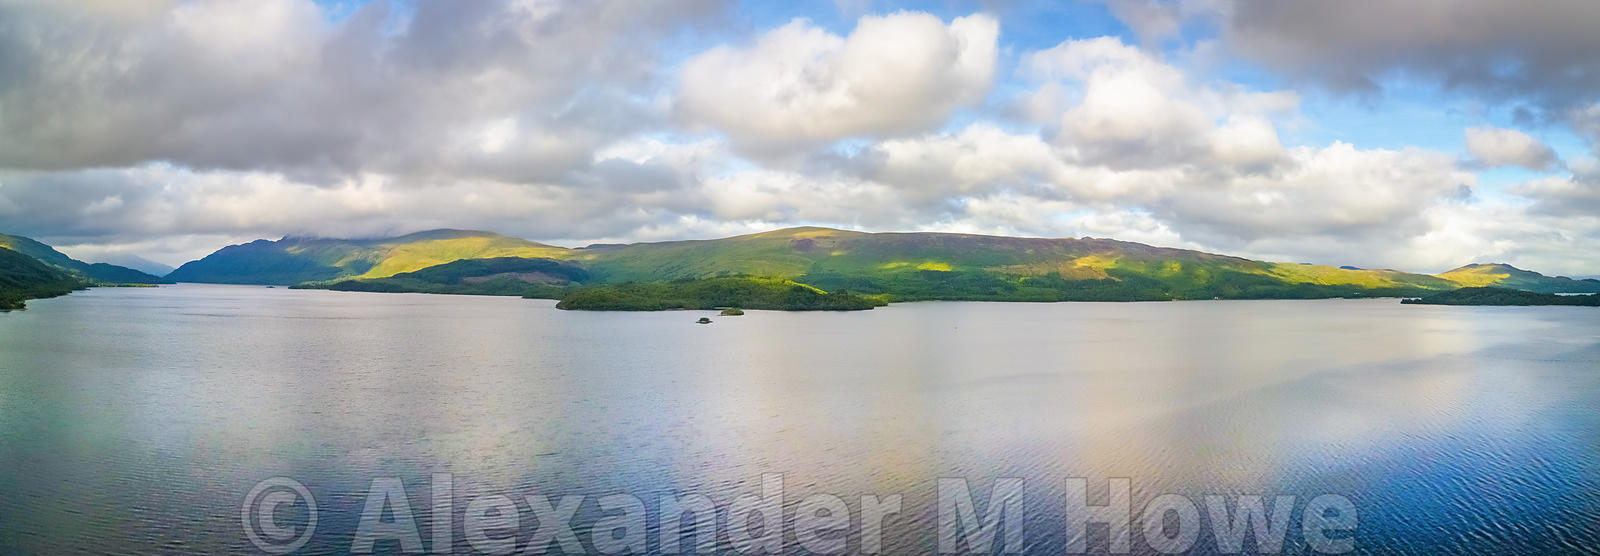 Looking across Loch Lomond towards Conic Hill with fluffy white clouds in the sky and patches of yellow sunlight on the hills...